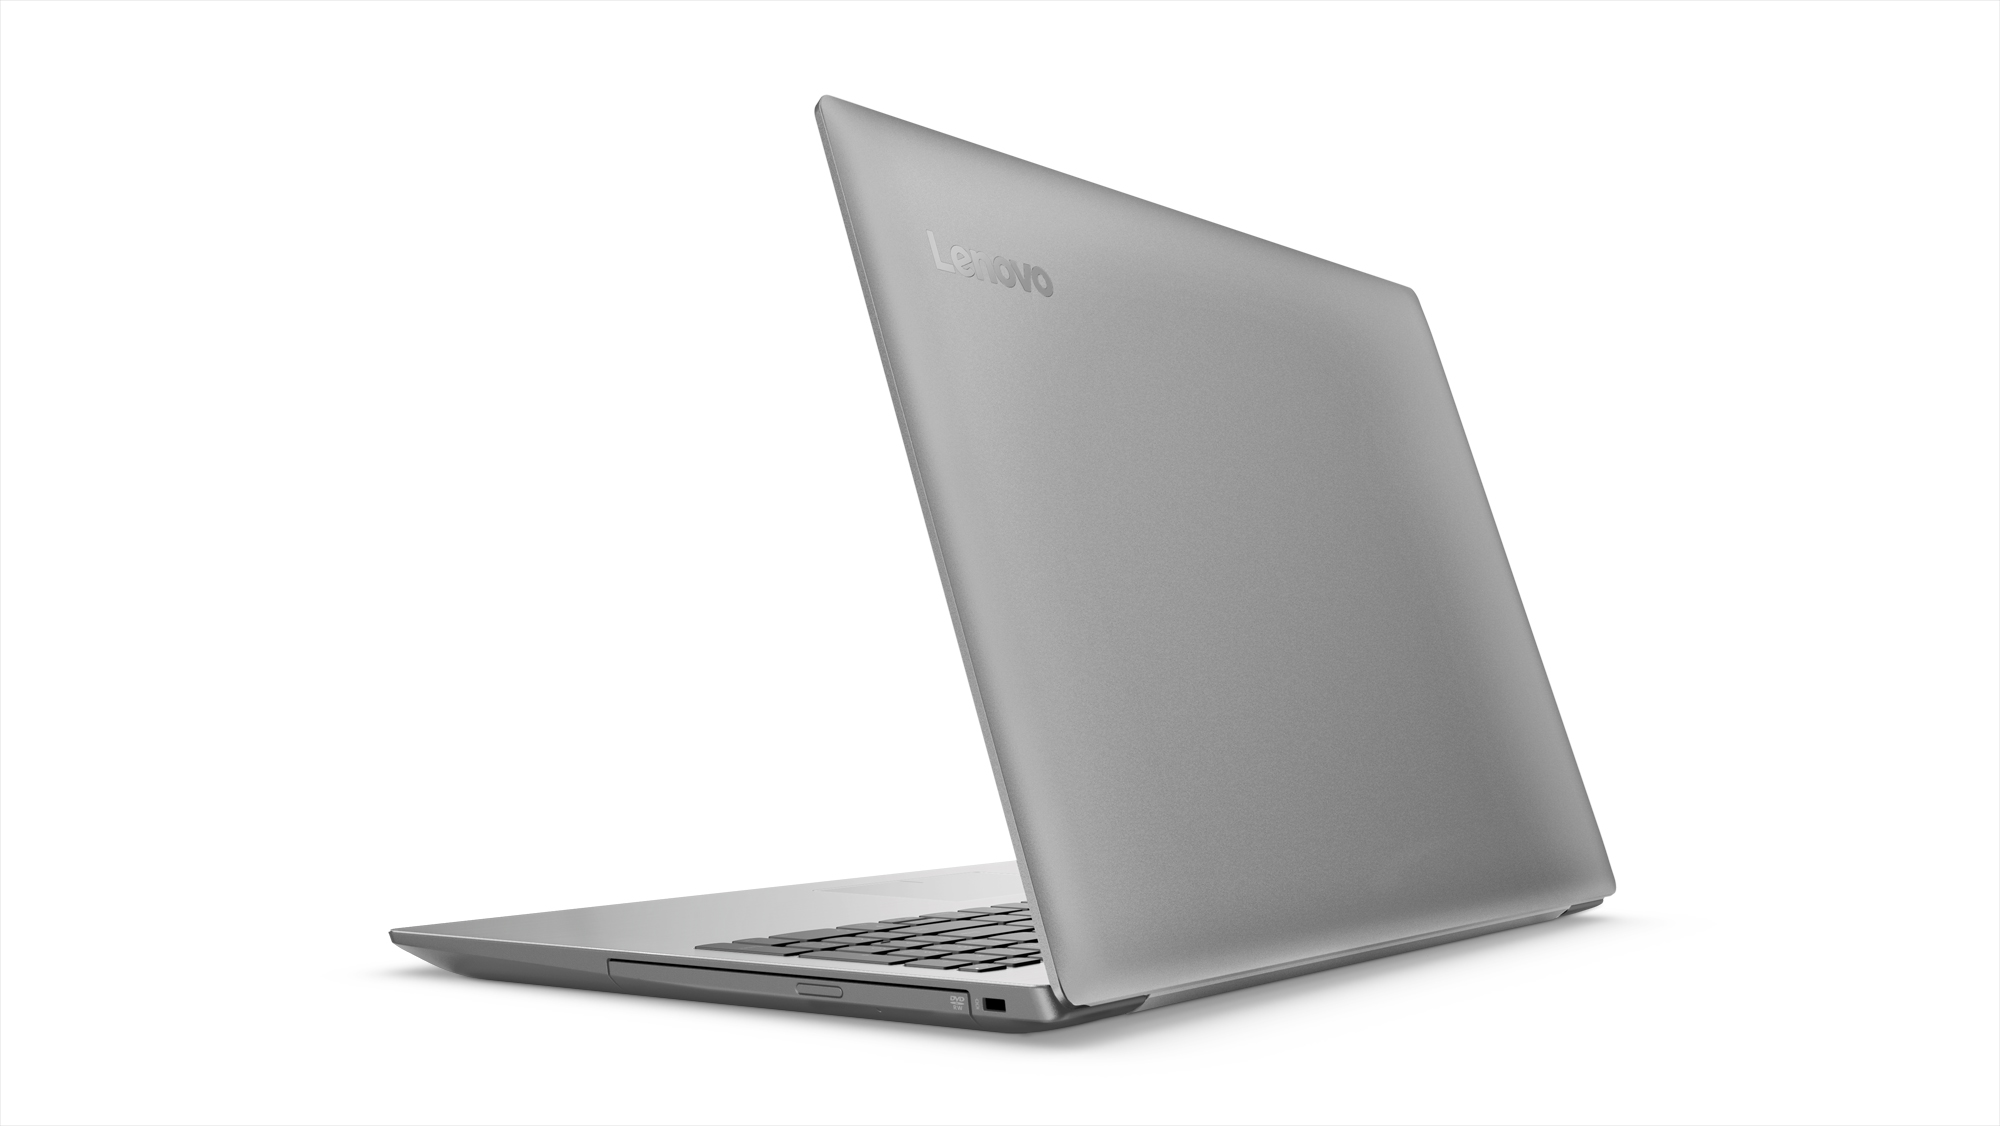 NOTEBOOK LENOVO IDEA 320-15IAP N3350/4GB/128GB SSD/W10